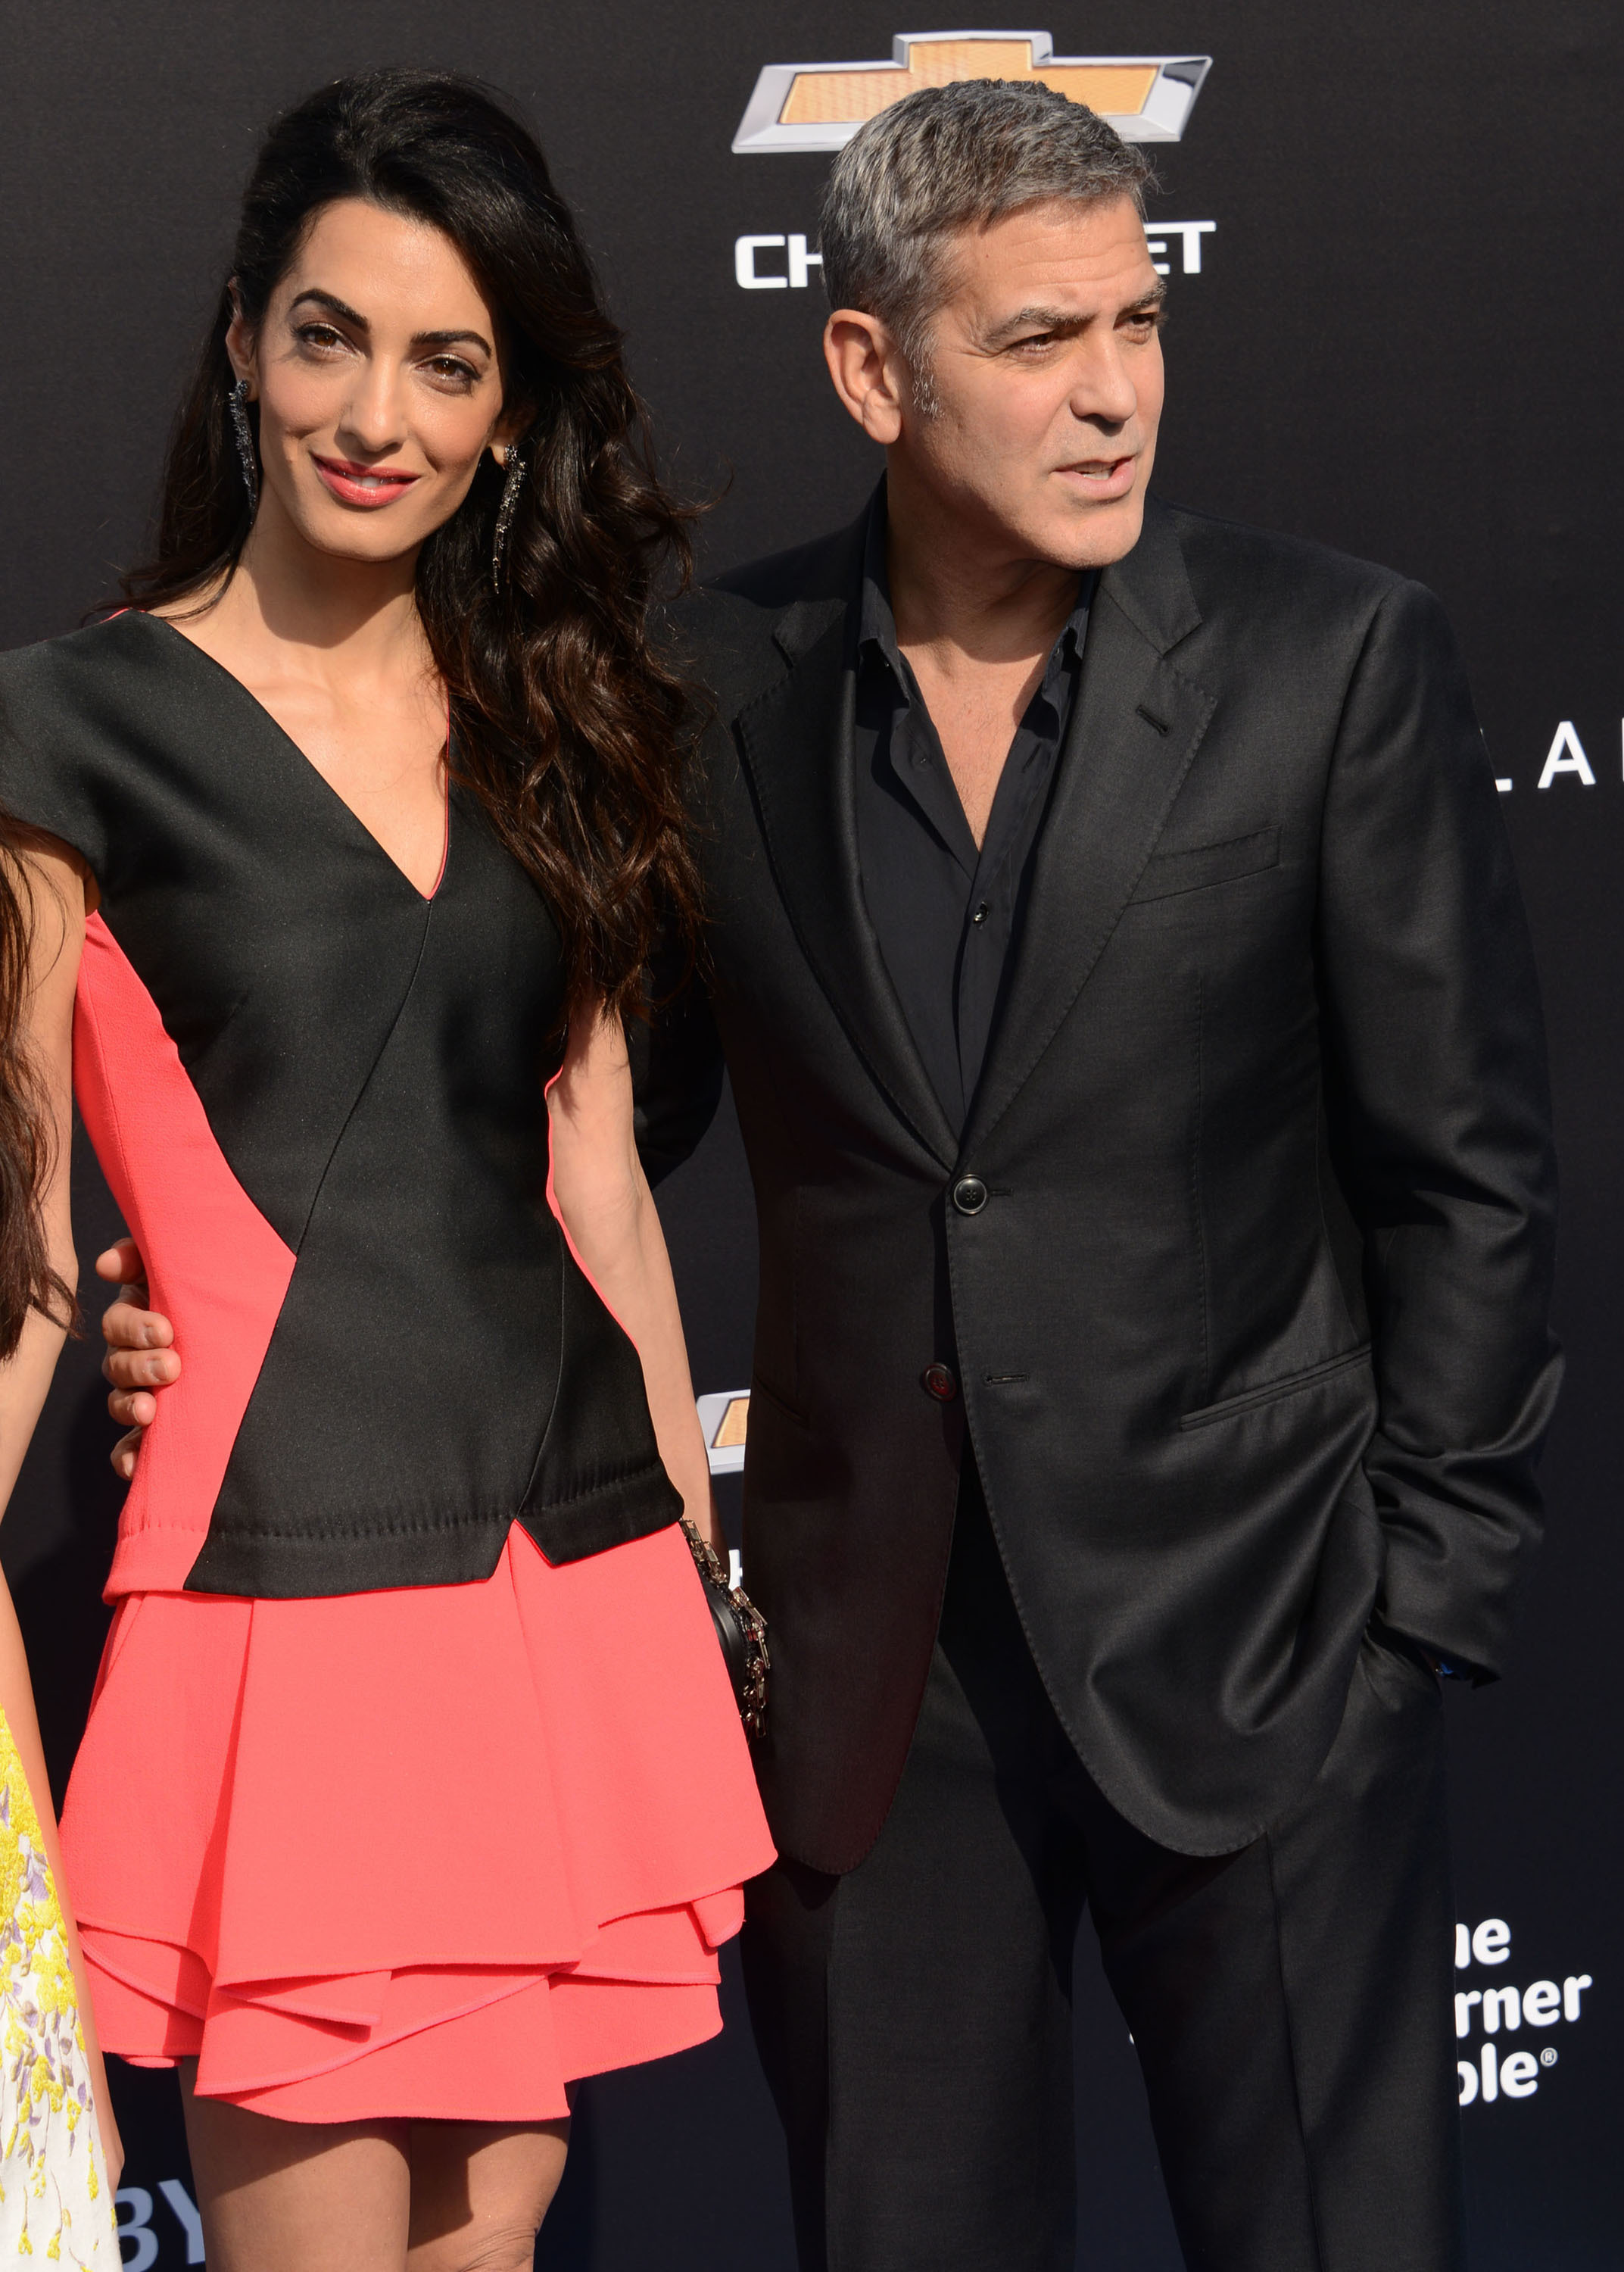 George and Amal Clooney are still enjoying a 'fairy tale romance'